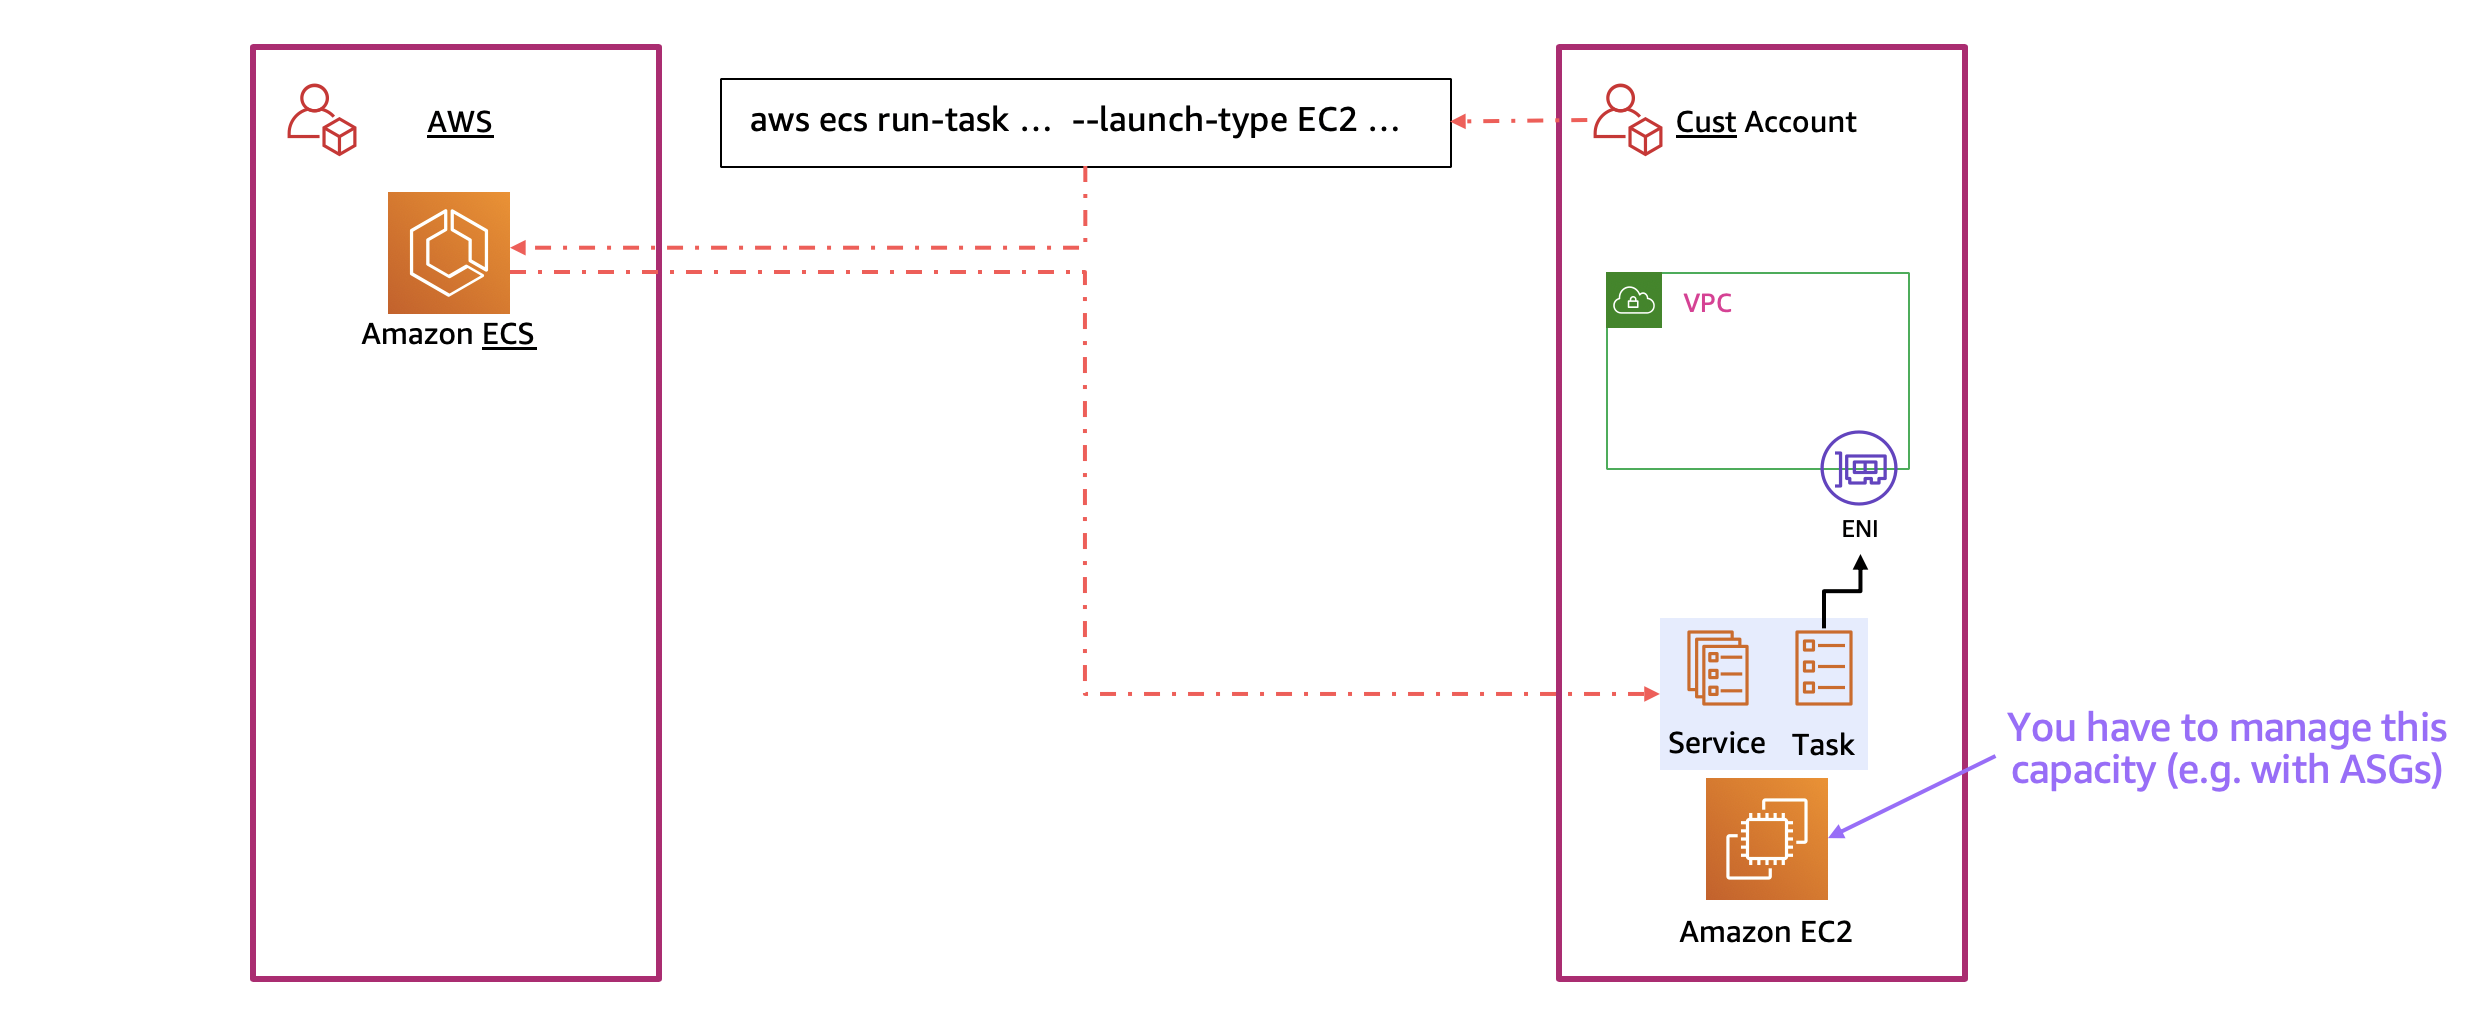 """Diagram showing interactions when launching an ECS task with the EC2 launch type. Three boxes are shown. The one in the middle contains the text """"aws ecs run task ... --launch-type EC2 ..."""" and an arrow is drawn to the left-hand box, which is labeled """"AWS"""" and contains a smaller box labeled """"Amazon ECS"""". An arrow is drawn below the first one starting at the left-hand box and ending inside the right-hand box. The right-hand box is labeled """"Cust Account"""" and contains several smaller boxes. One is labeled """"Amazon EC2"""" and an arrow points to this box with the label """"You have to manage this capacity (e.g. with ASGs)."""" Above the """"Amazon EC2"""" box is a colored area with the labels """"Service"""" and """"Task"""", representing the Amazon ECS task that was launched."""